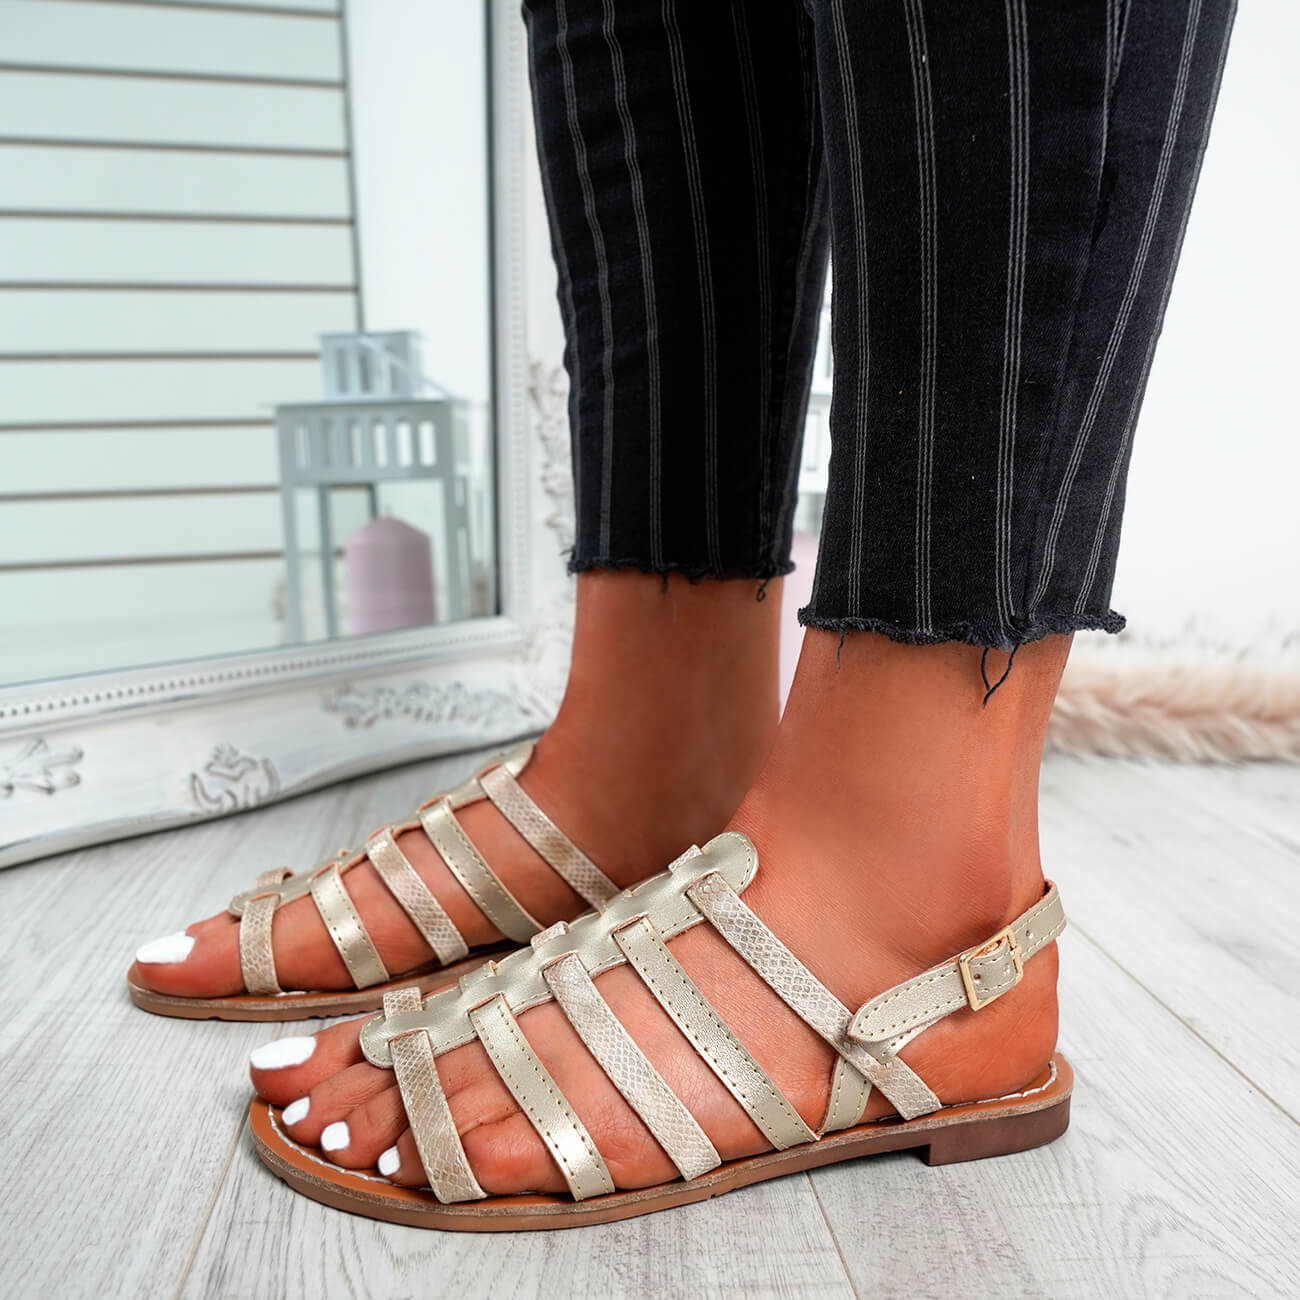 WOMENS-LADIES-BUCKLE-STRAP-FLAT-SUMMER-SANDALS-CASUAL-HOLIDAY-COMFY-SHOES-SIZE thumbnail 40